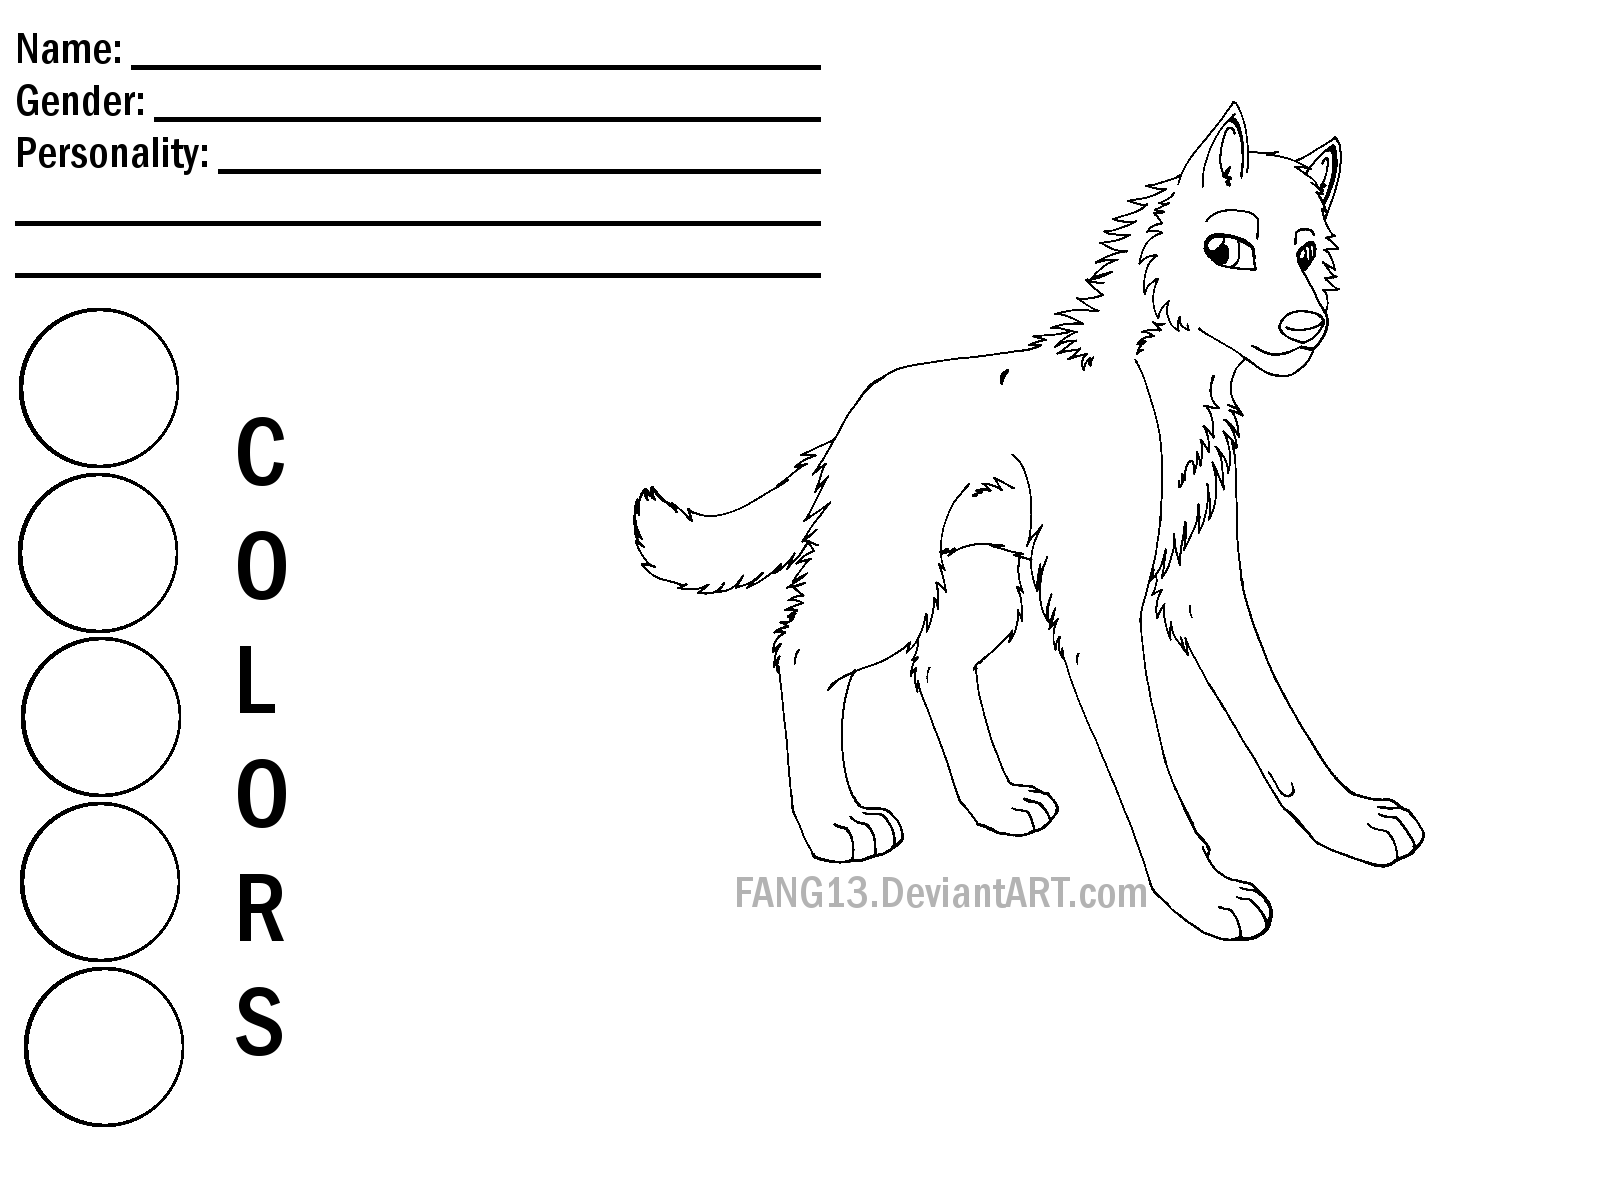 ref_sheet_lineart_ms_paint_by_fang13-d3hraw3.png